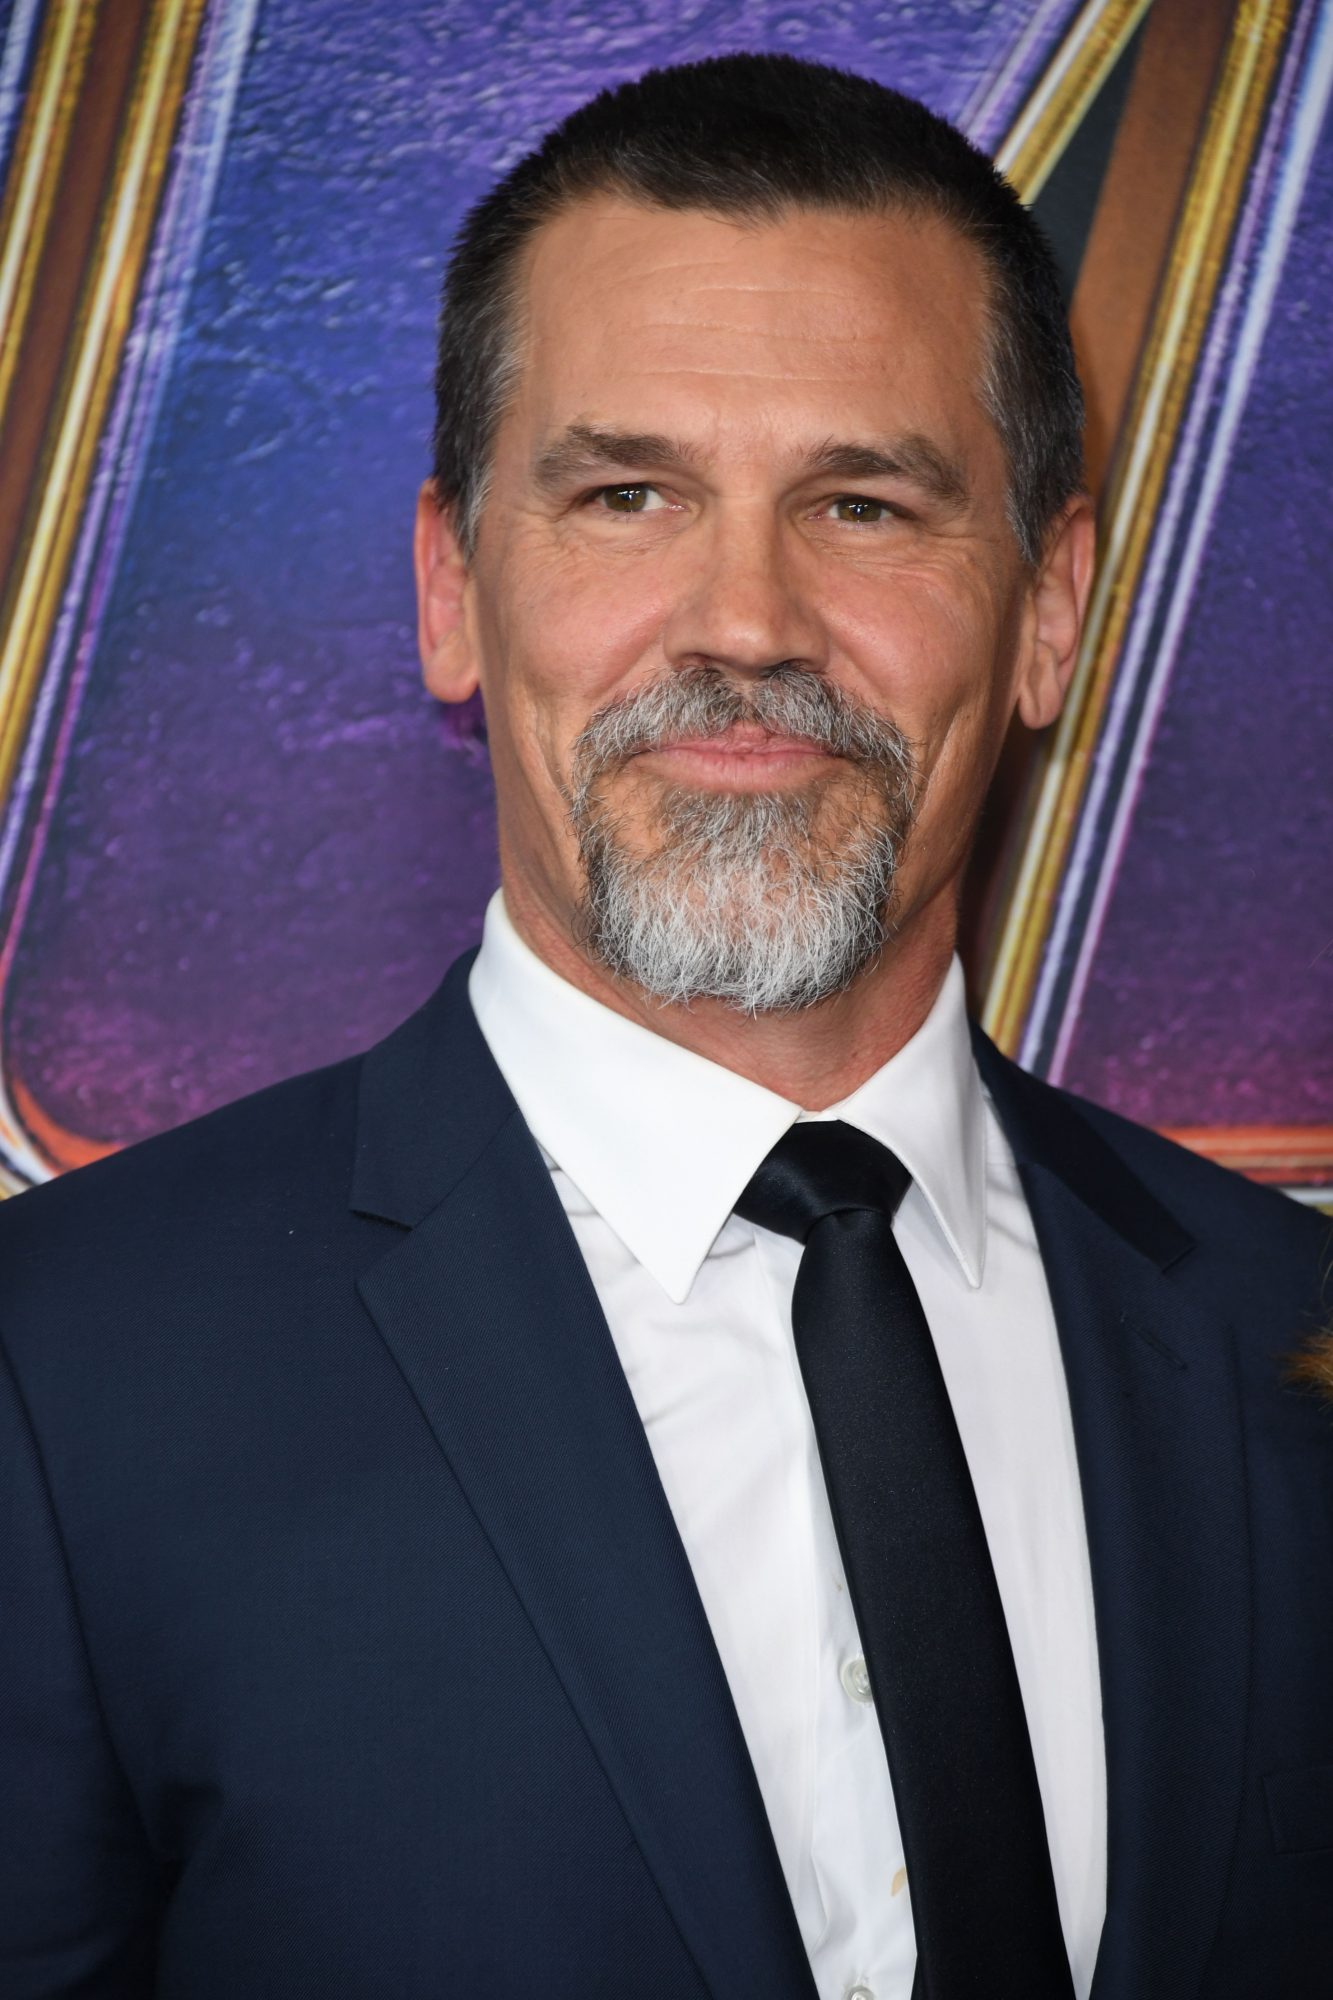 """US actor Josh Brolin arrives for the World premiere of Marvel Studios' """"Avengers: Endgame"""" at the Los Angeles Convention Center on April 22, 2019 in Los Angeles. (Photo by VALERIE MACON/AFP/Getty Images)"""